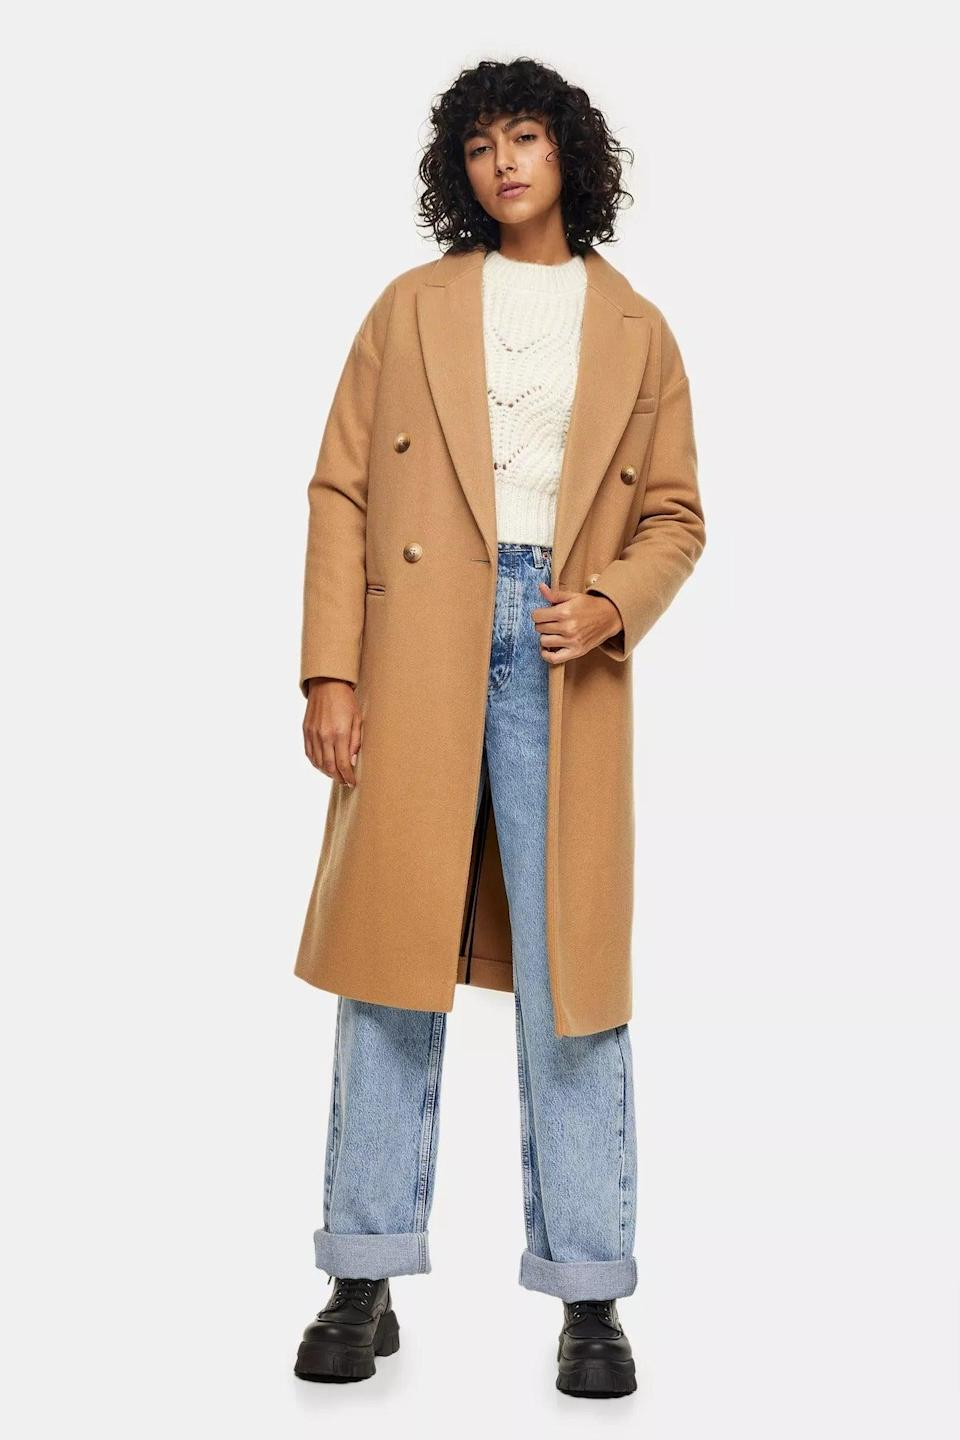 """<br><br><strong>Topshop</strong> Camel Classic Double Breasted Coat, $, available at <a href=""""https://www.topshop.com/en/tsuk/product/clothing-427/jackets-coats-2390889/camel-classic-double-breasted-coat-10086691"""" rel=""""nofollow noopener"""" target=""""_blank"""" data-ylk=""""slk:Topshop"""" class=""""link rapid-noclick-resp"""">Topshop</a>"""